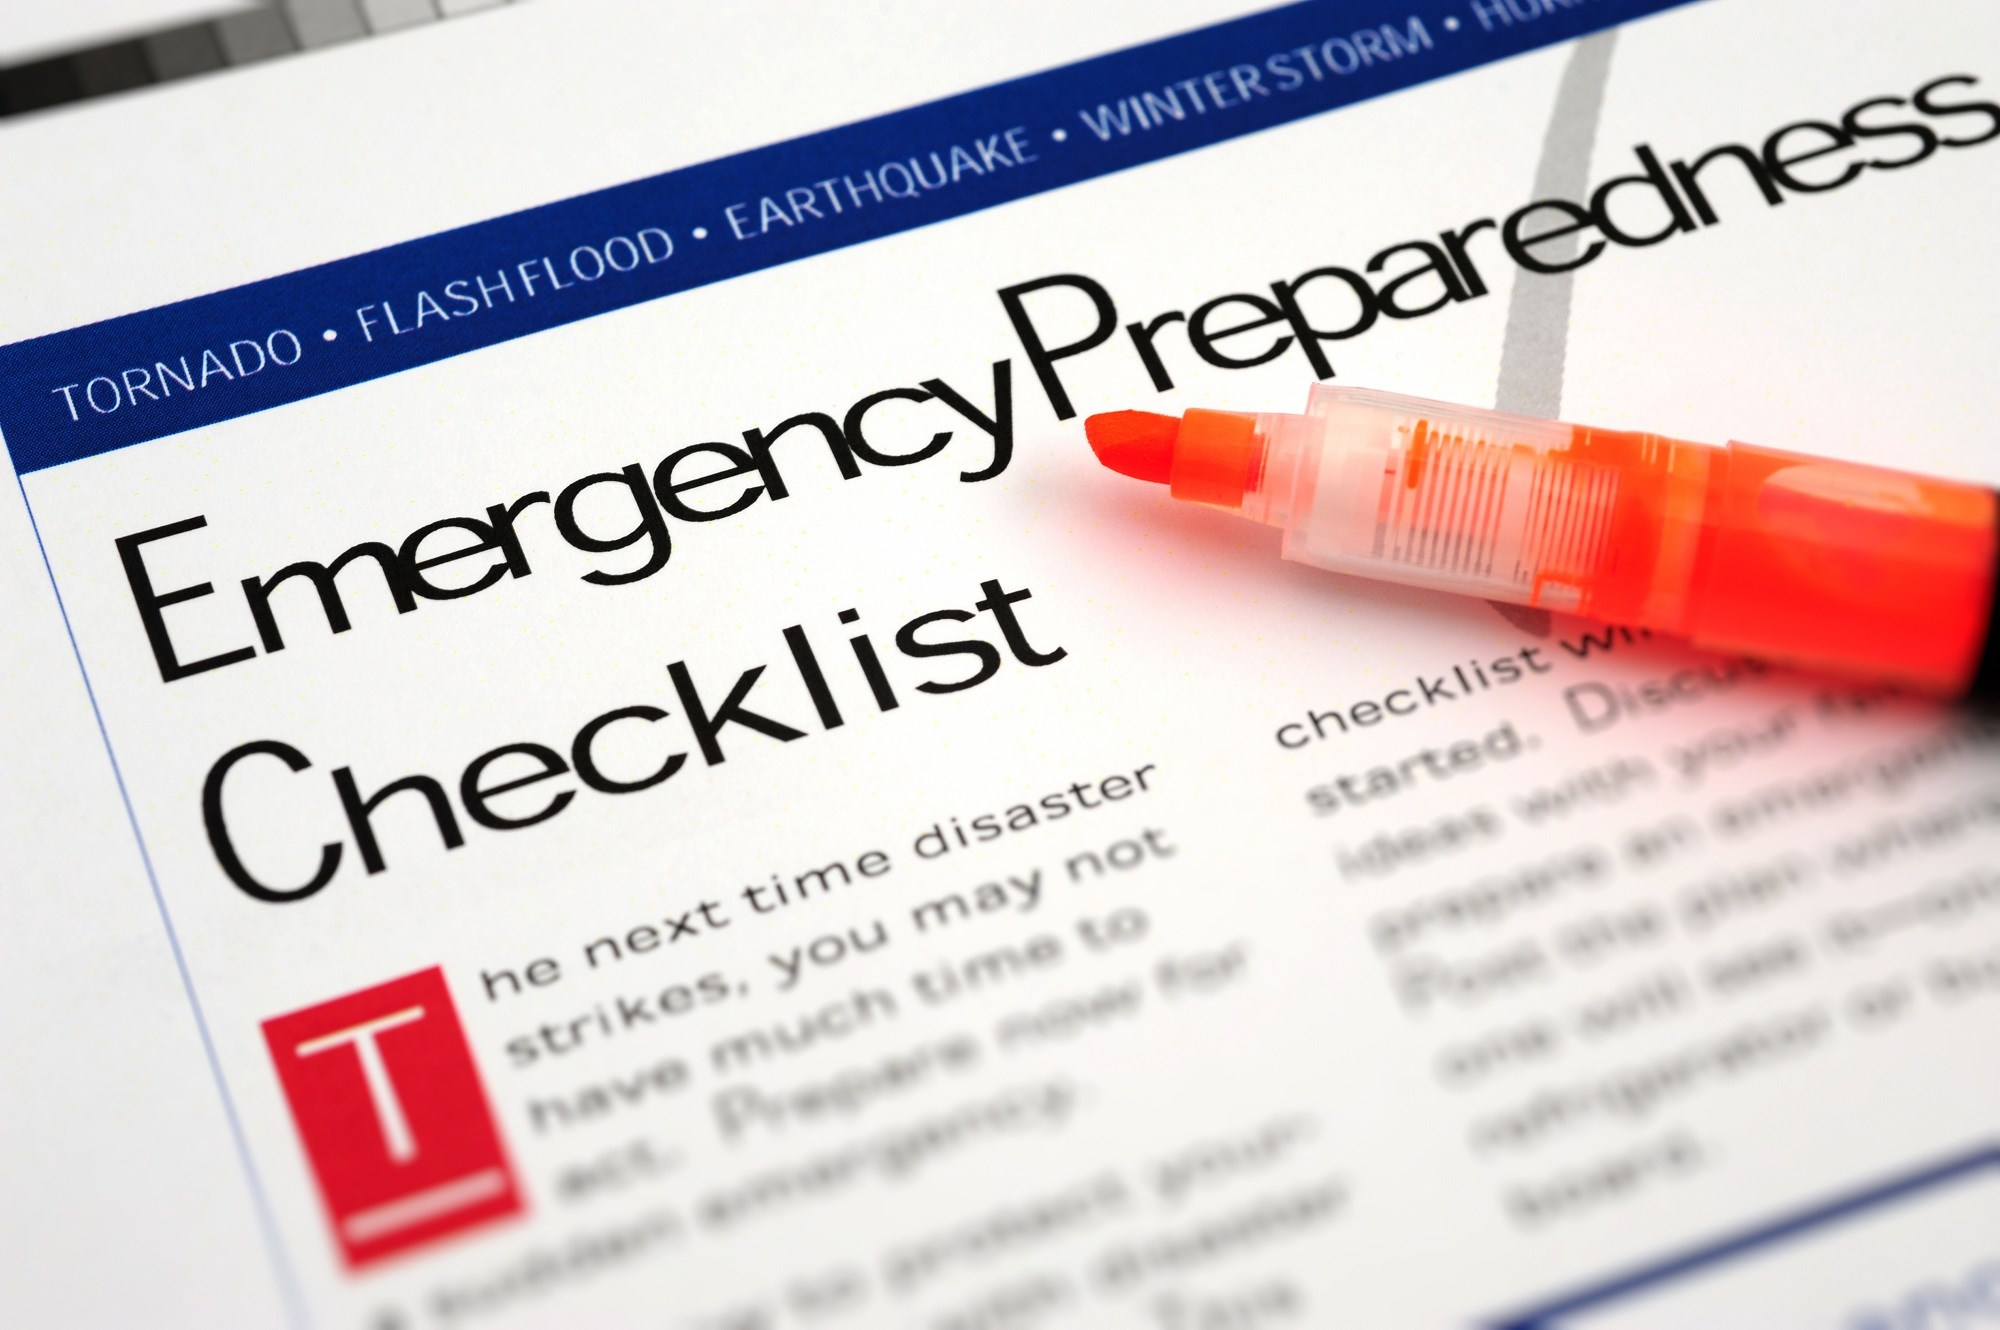 Physicians are not as prepared to handle emergencies as they should or could be.